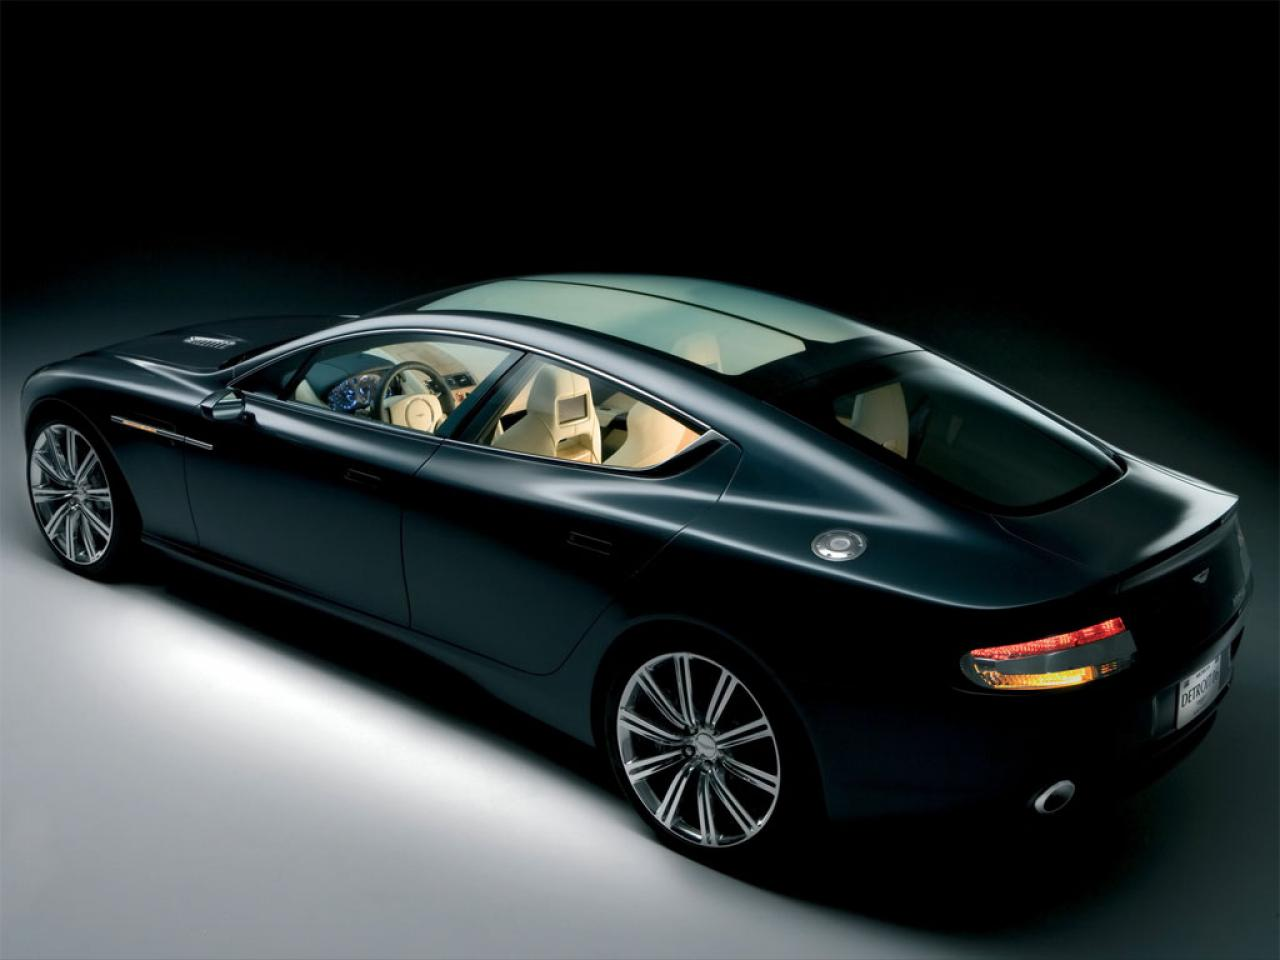 Aston Martin Rapide Information And Photos ZombieDrive - How much are aston martins